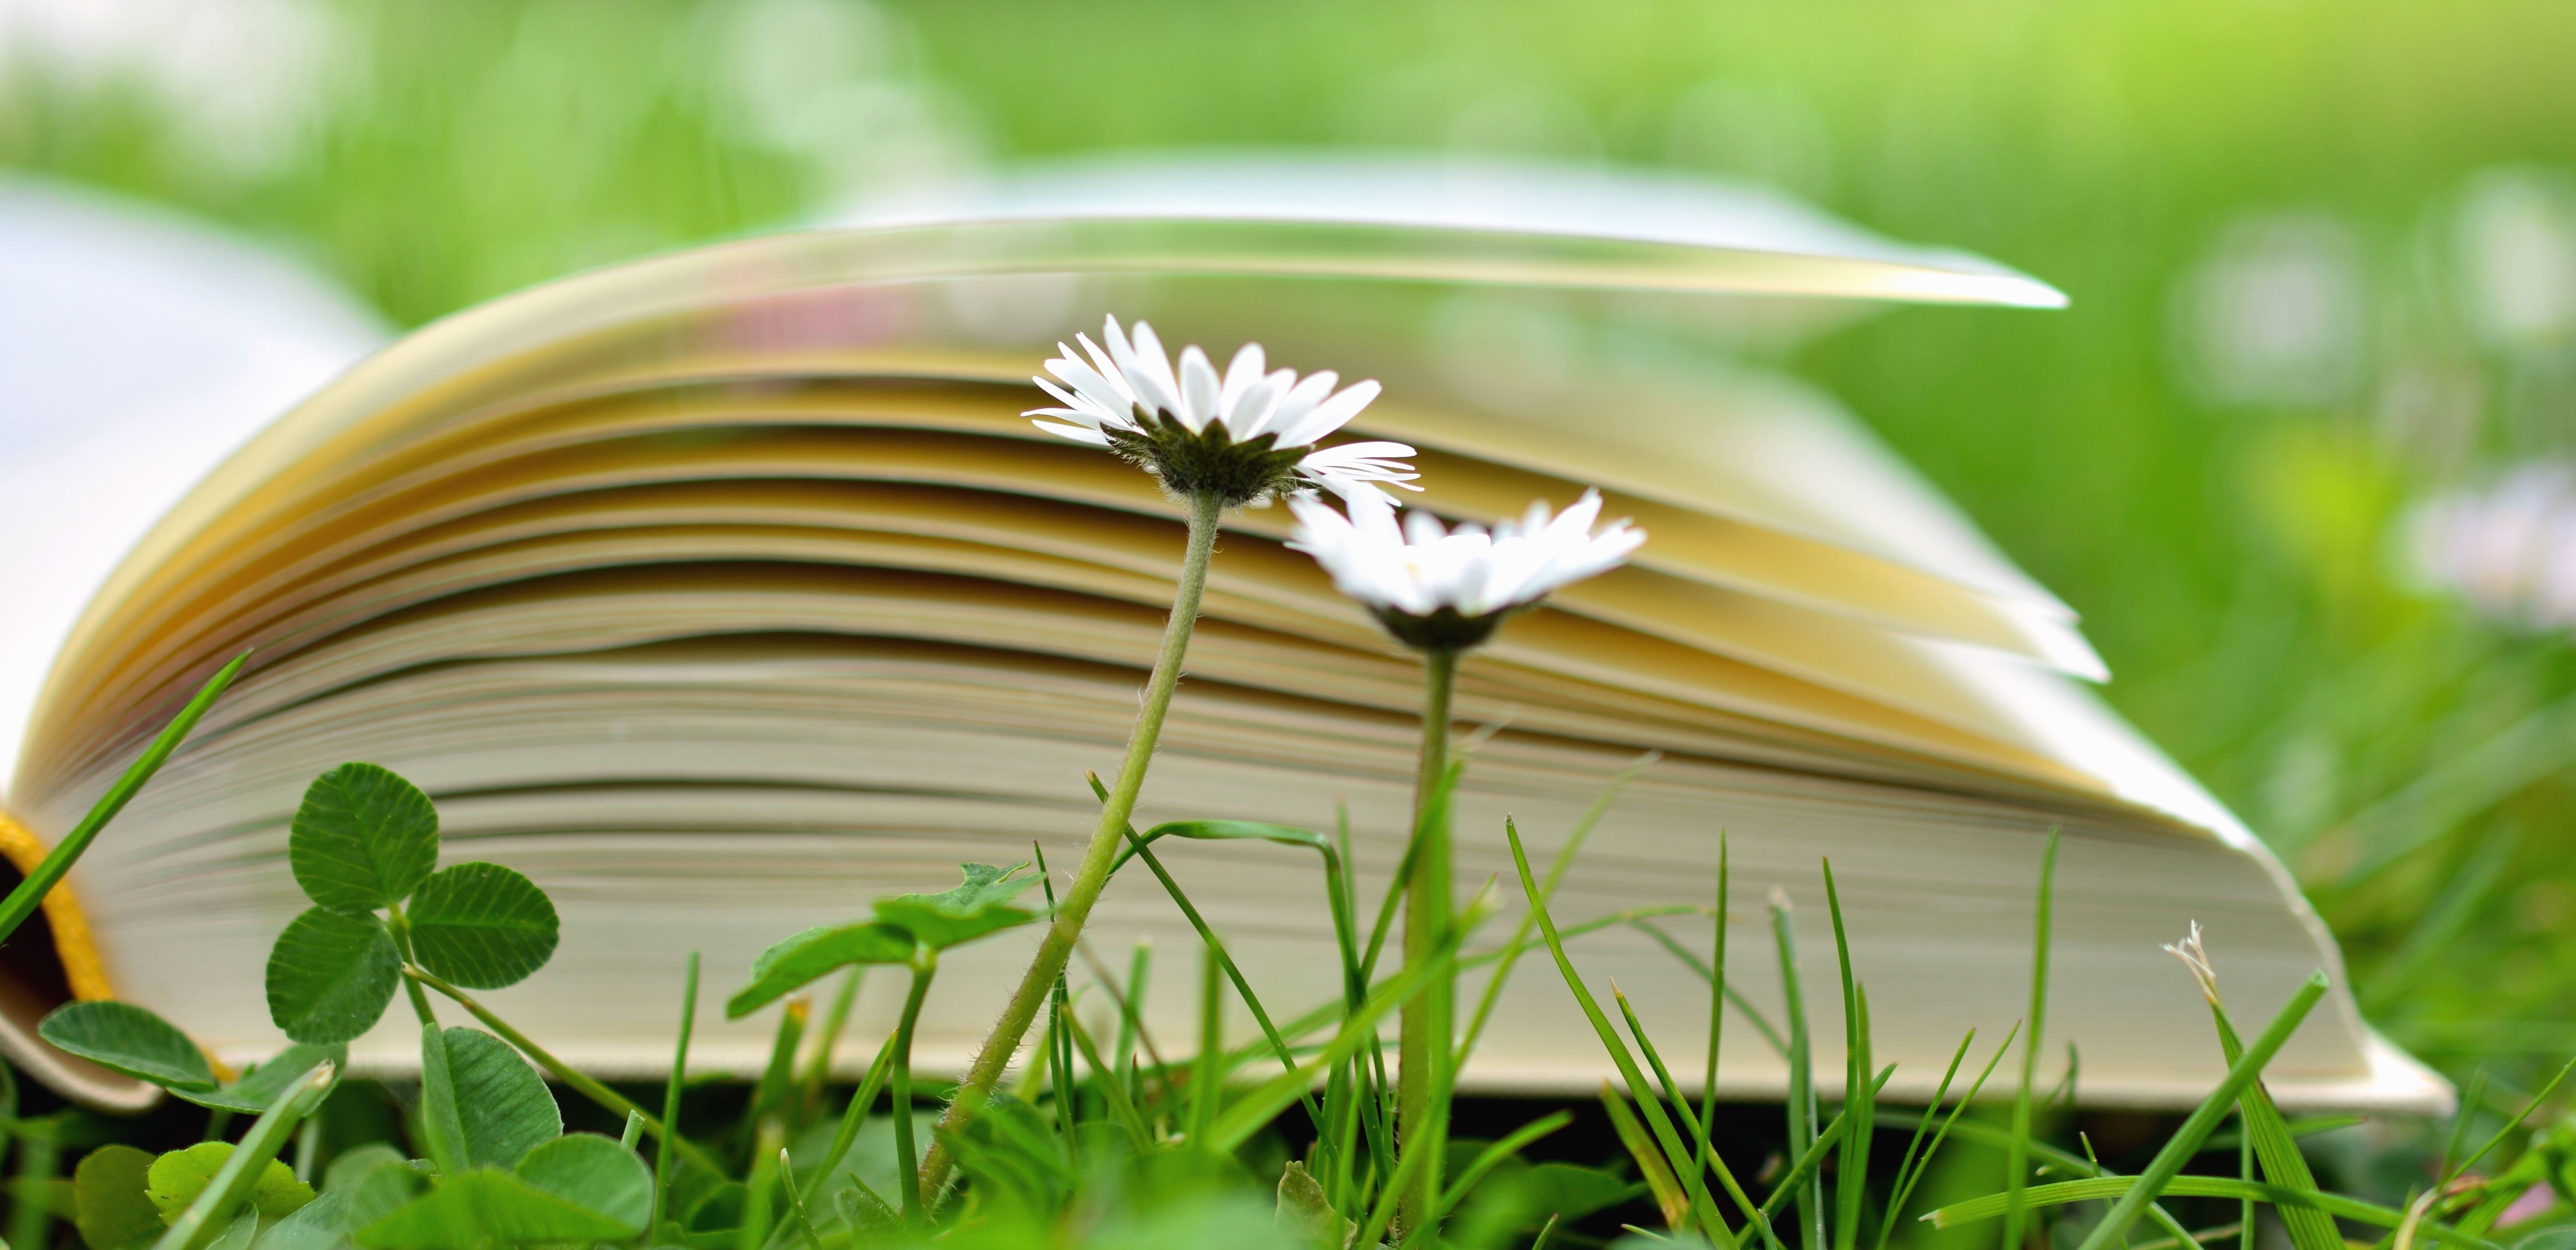 Free Picture Clover Daisy Flower Book Grass